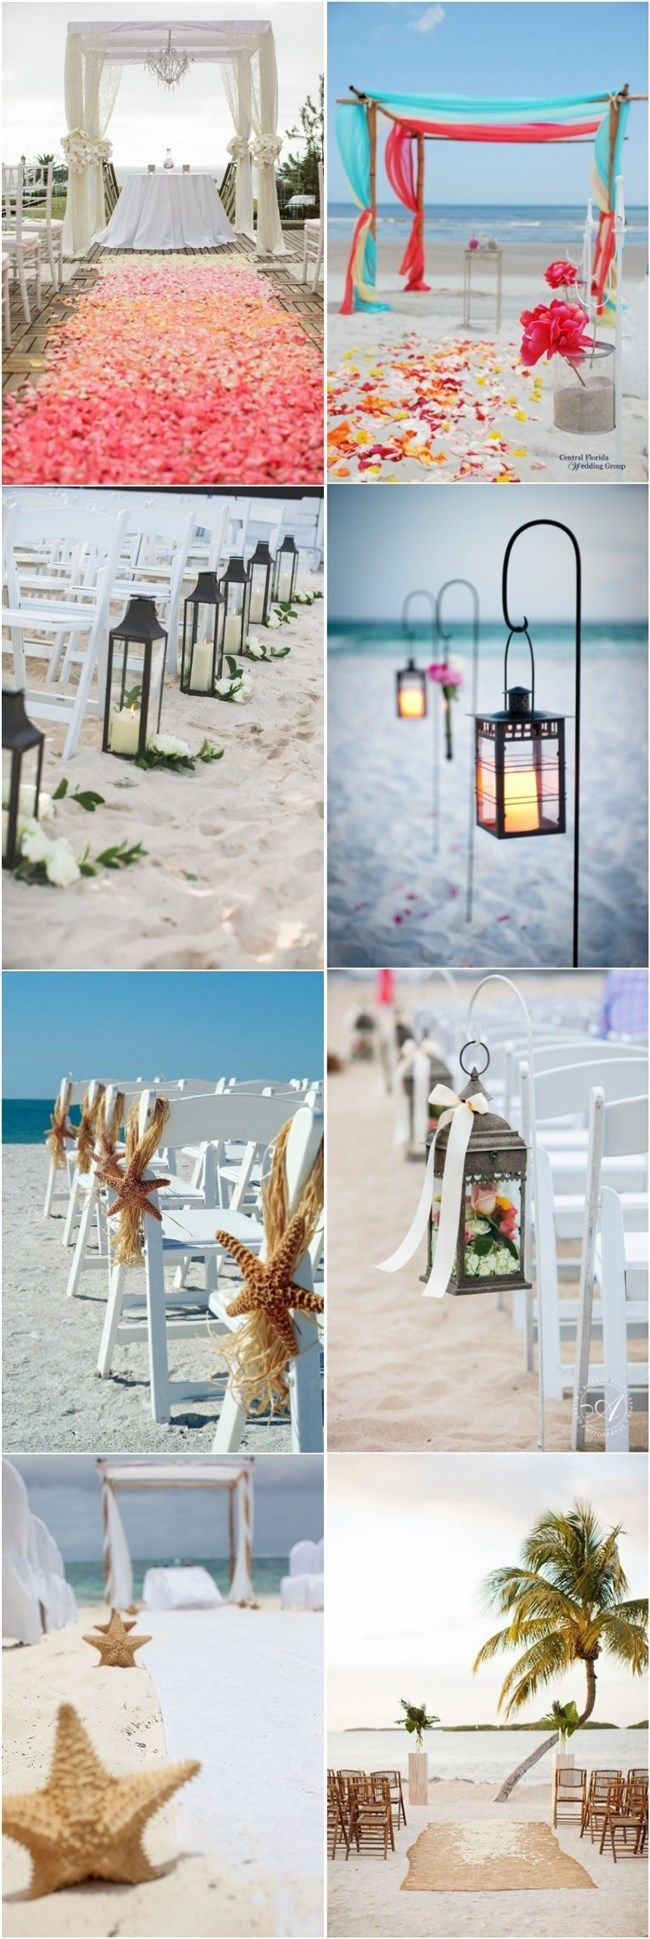 Best 25 beach weddings ideas on pinterest beach ceremony 50 beach wedding aisle decoration ideas junglespirit Images